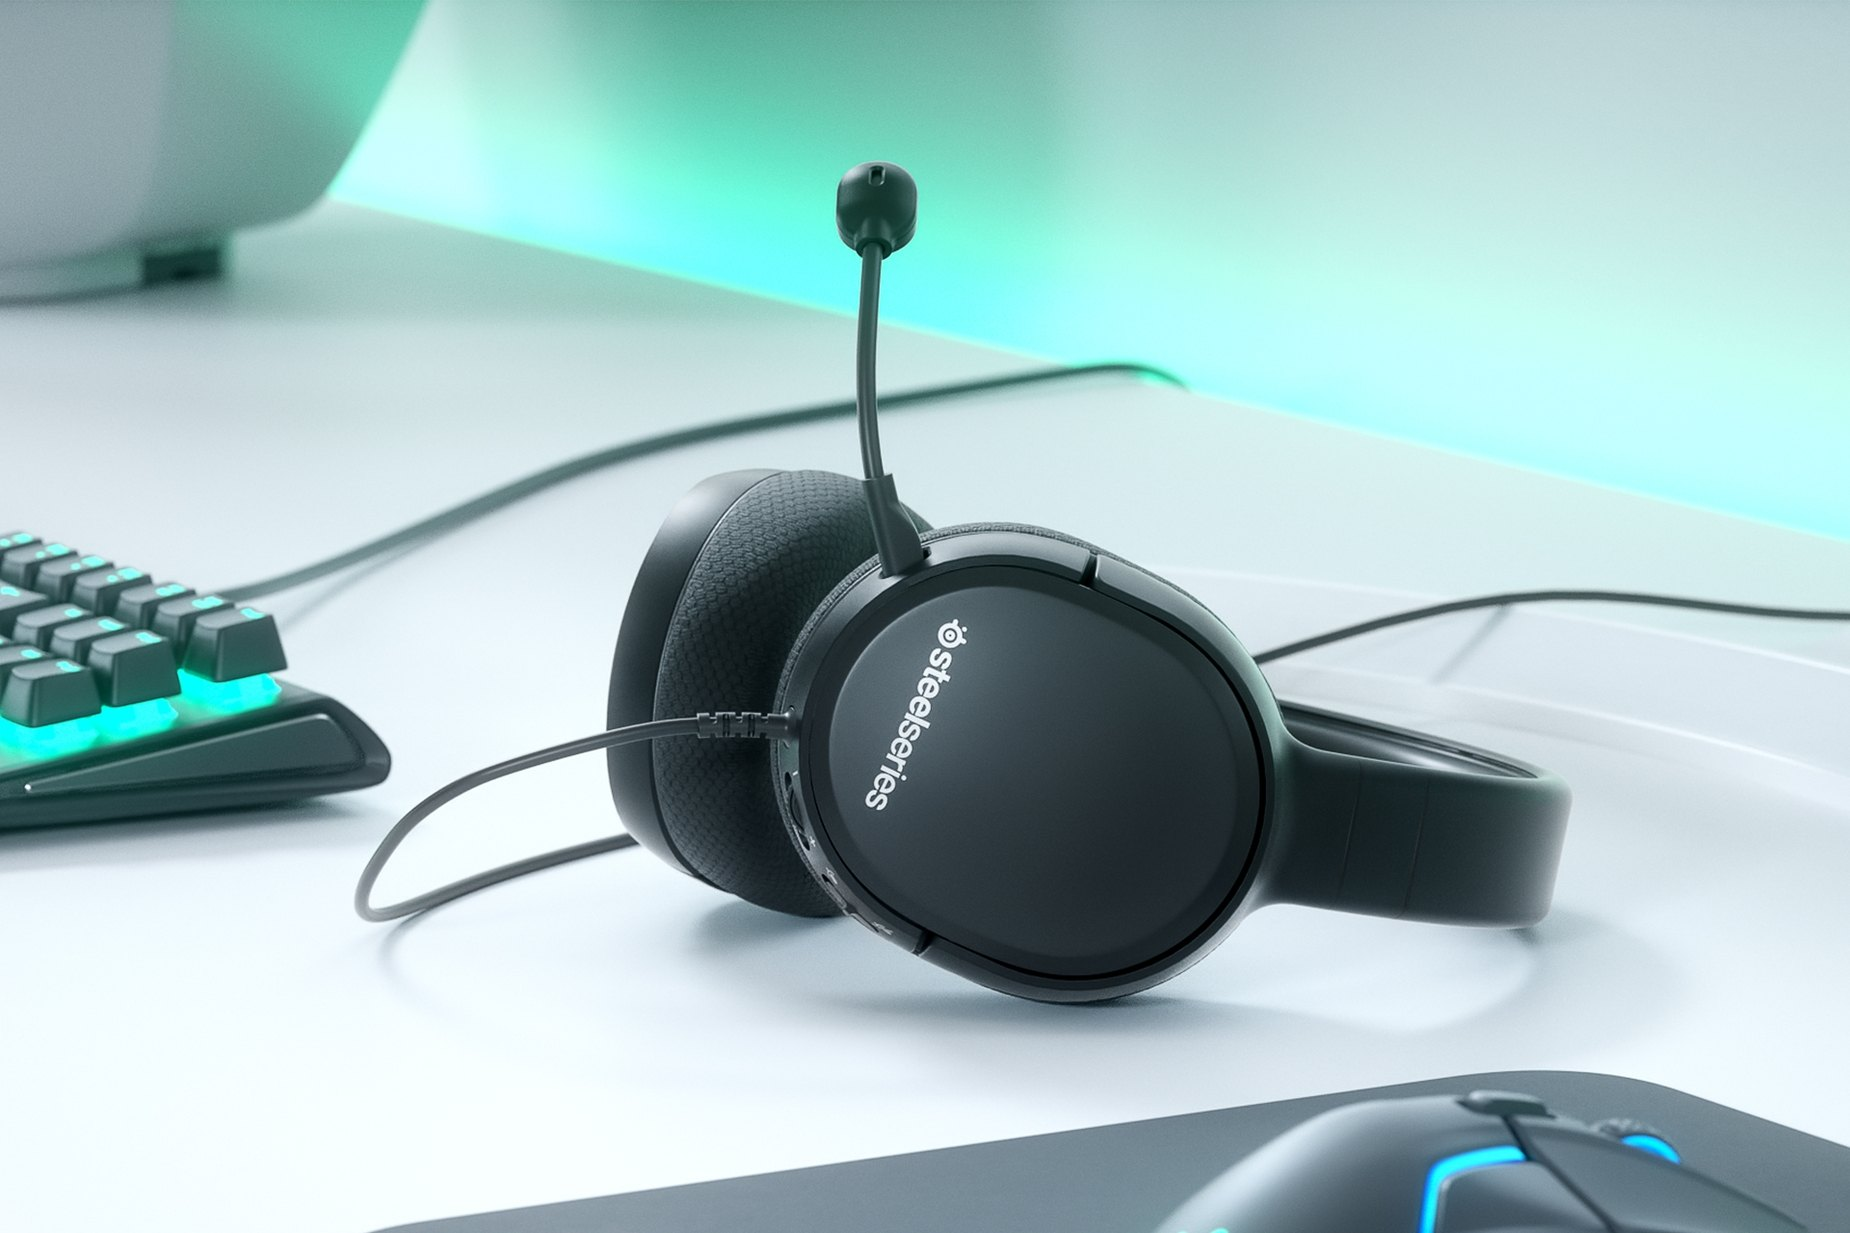 Tech-Gift-Guide-SteelSeries-Arctic-headset-sitting-on-table-near-computer.jpg